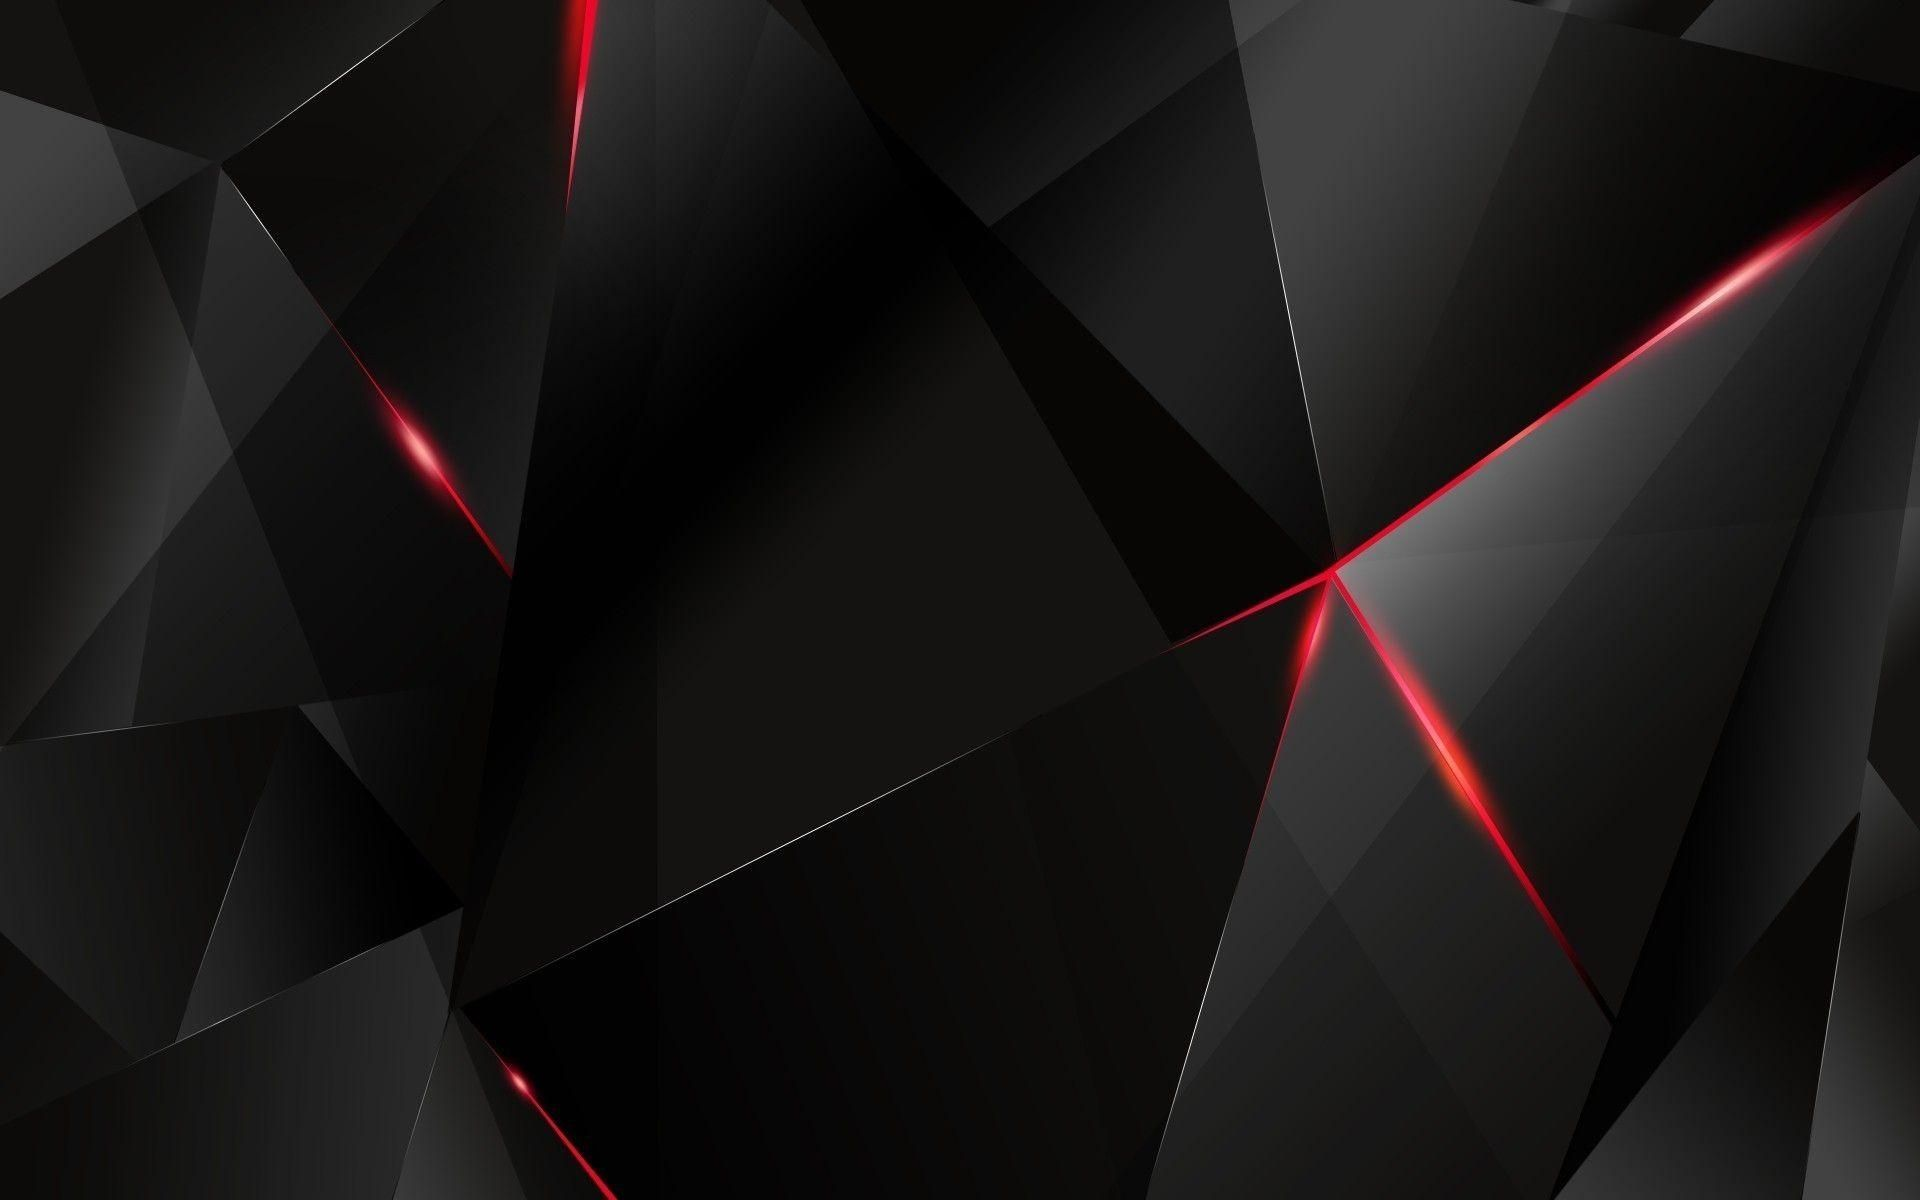 10 top hd wallpapers black and red full hd 1080p for pc desktop